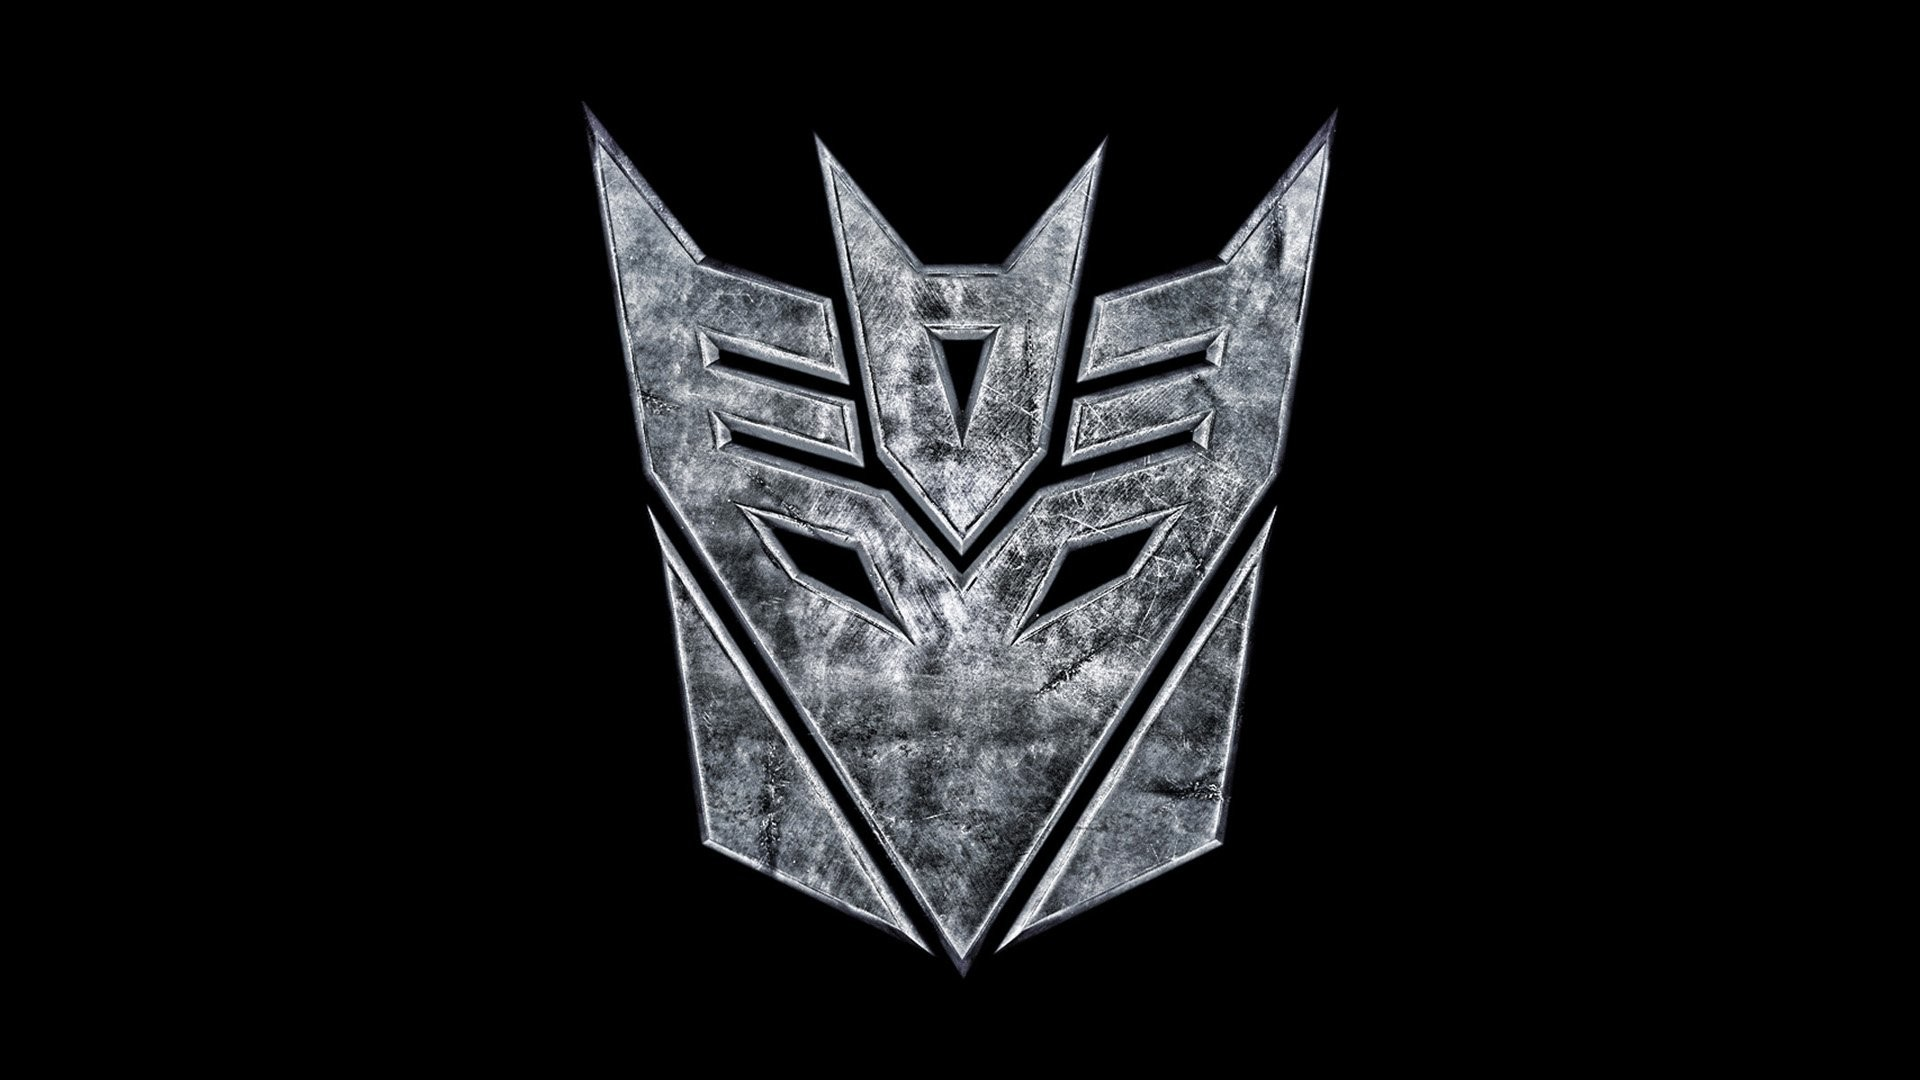 1920x1080 Autobots And Decepticons Logo Fused